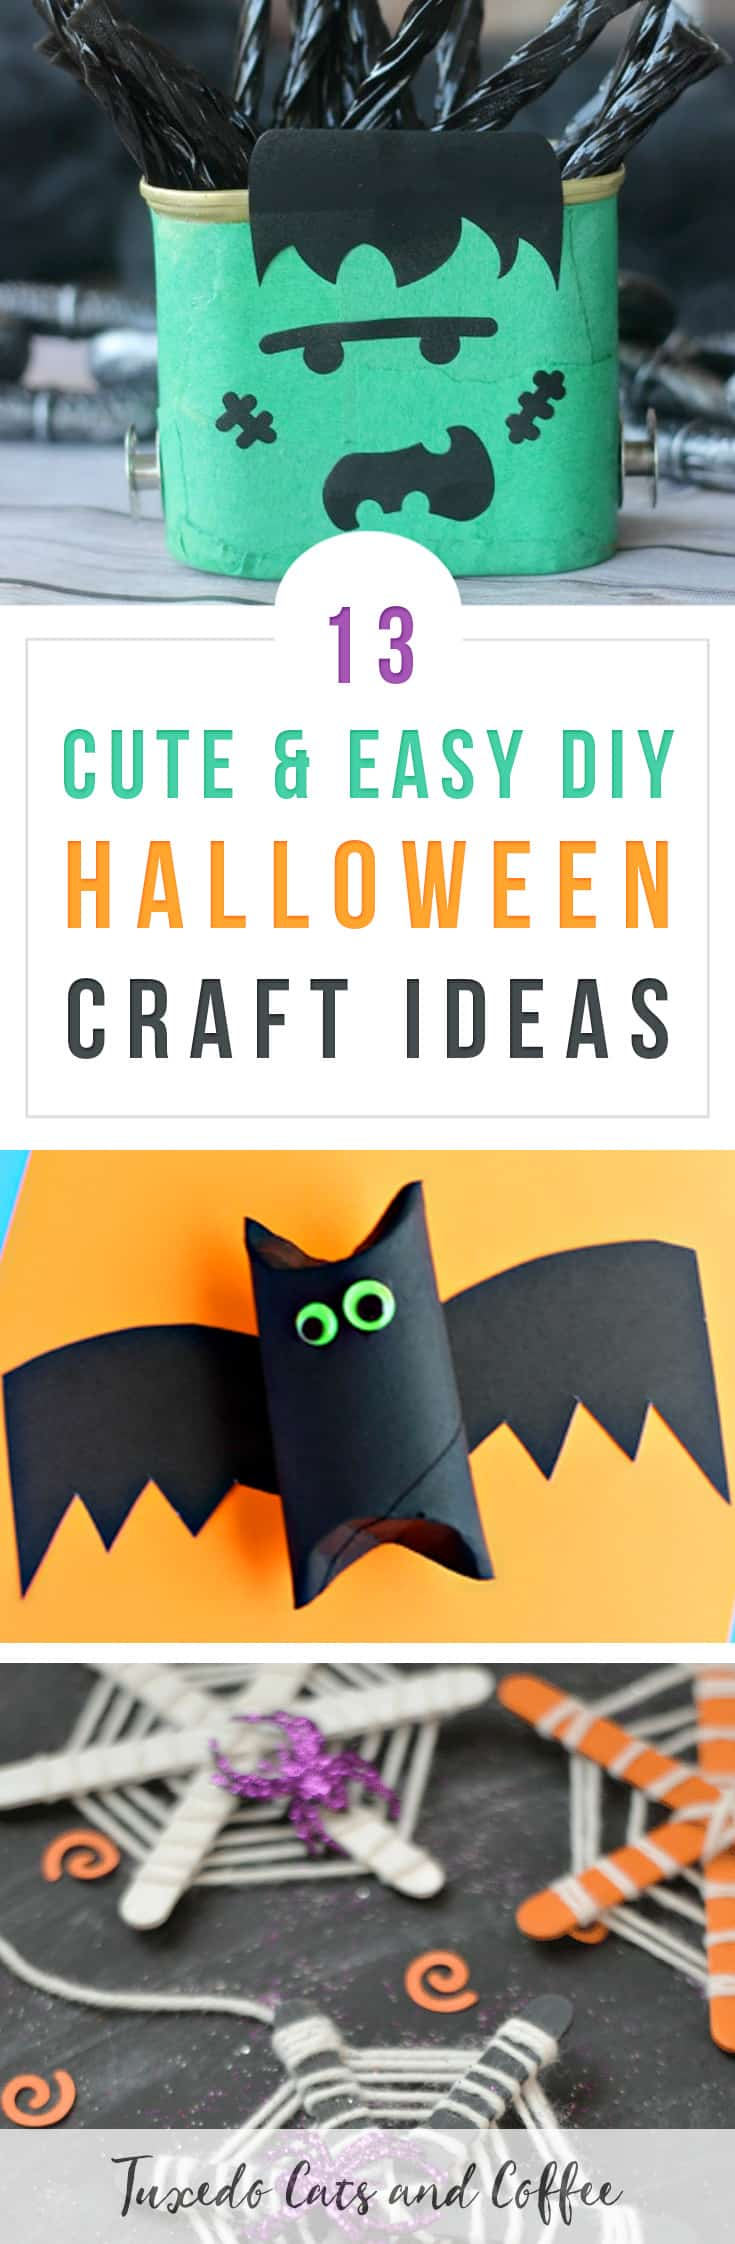 Halloween is coming up soon and it's a great time to decorate! These 13+ spooky homemade Halloween decorations will help you decorate the inside and outside of your home for Halloween without breaking the bank. There are Halloween craft ideas with spiders, ghosts, witches, pumpkins, garlands, chandeliers, and more!